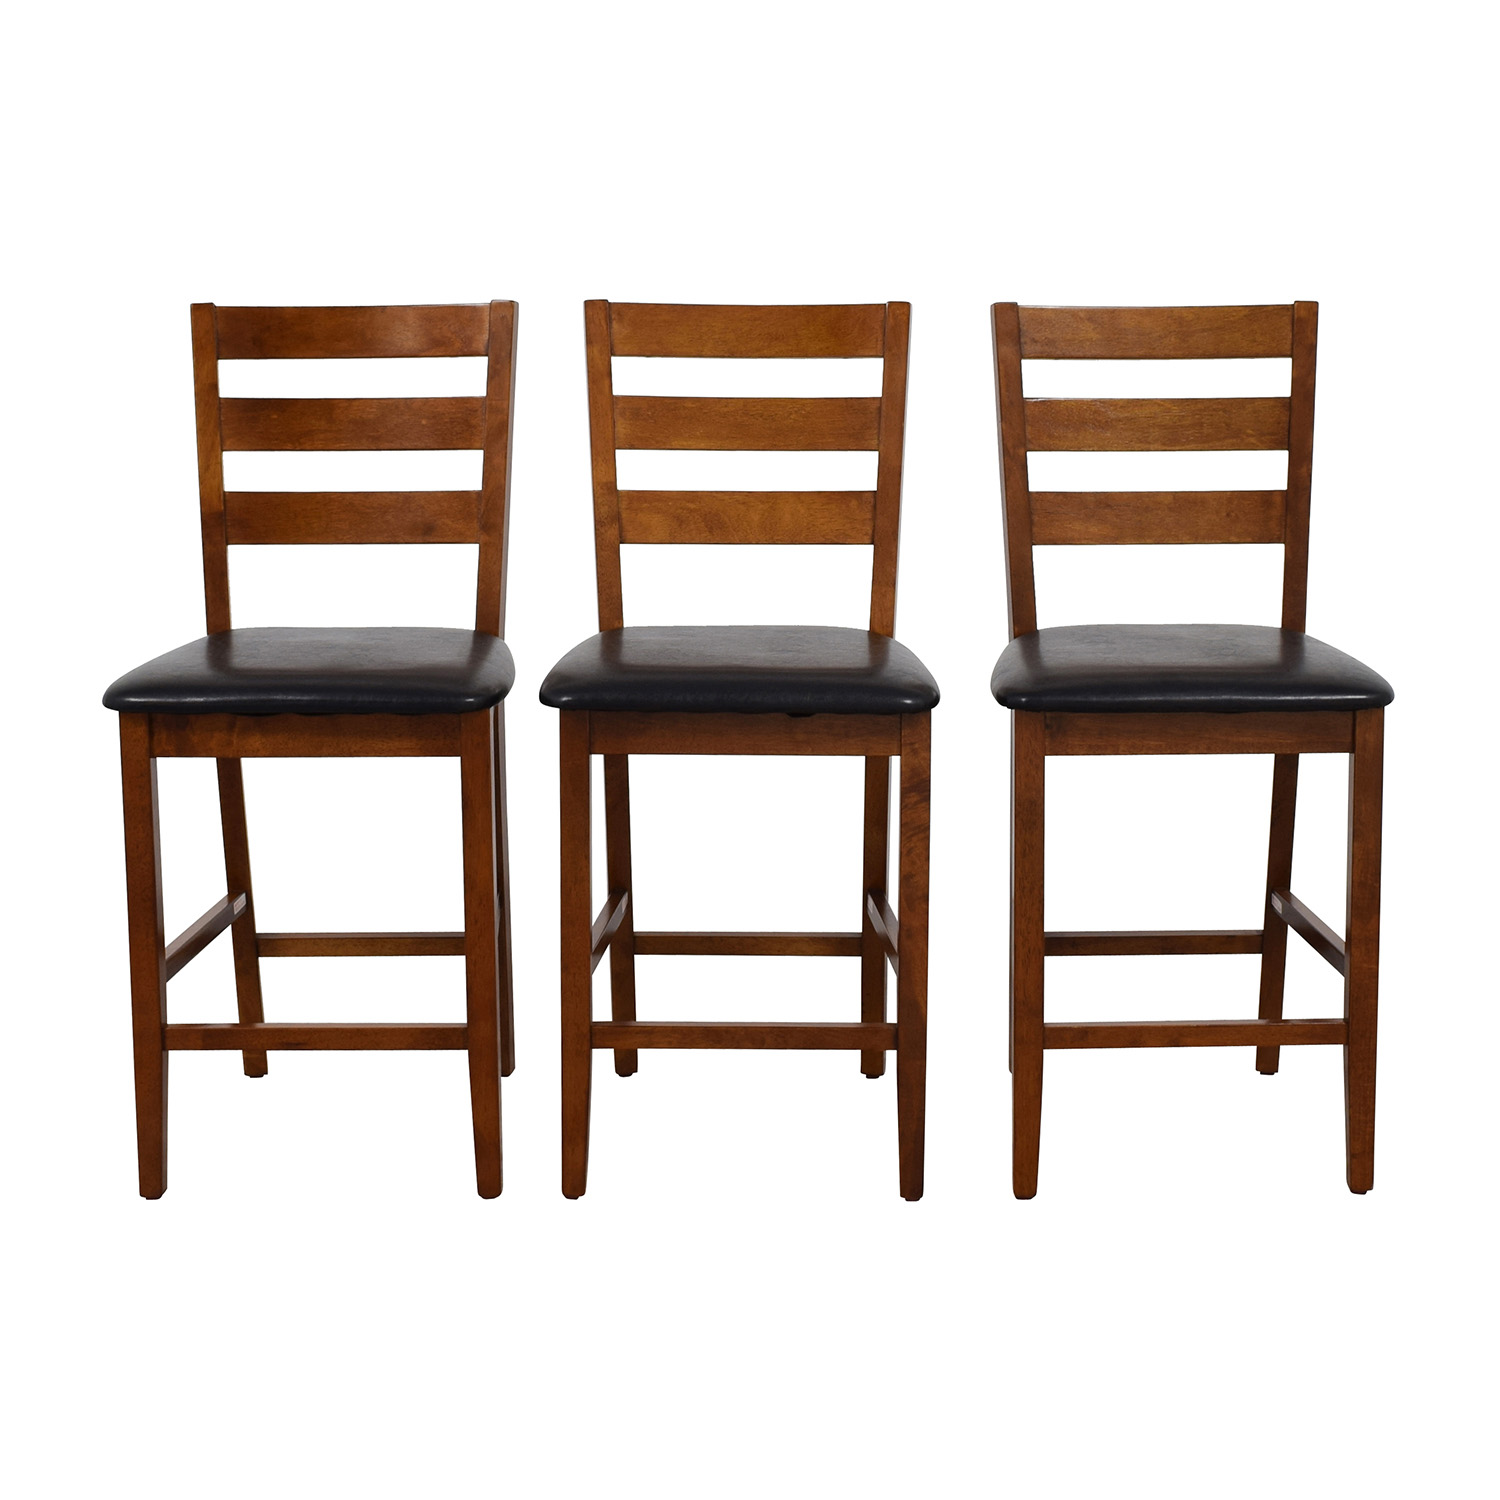 buy Better Homes and Garden Dalton Park Chairs Better Homes and Garden Chairs